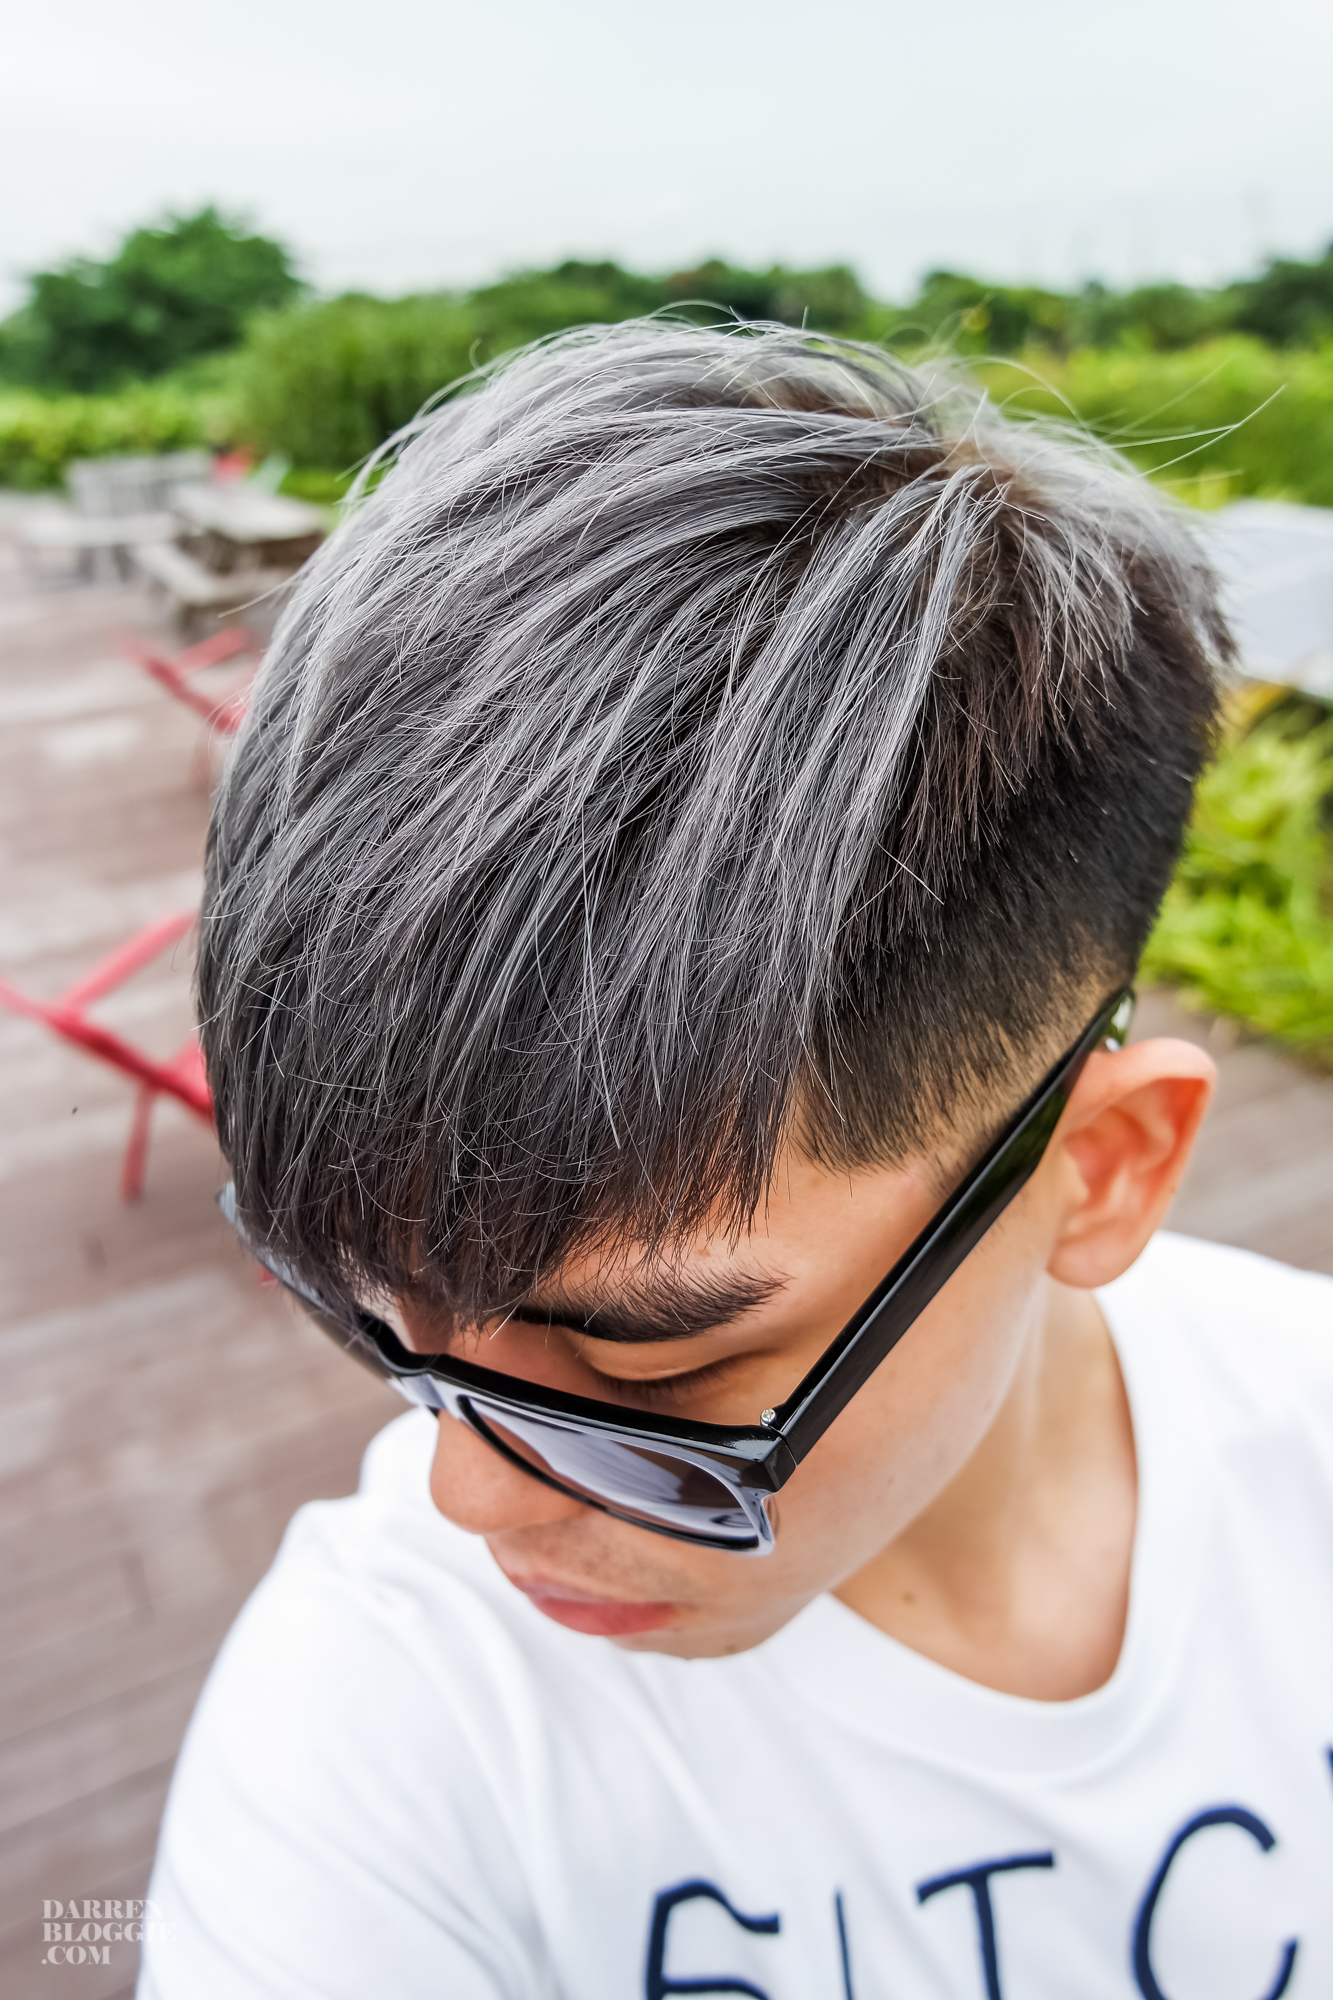 Cool Ash Grey Hair Color From 99 Percent Hair Studio Darren